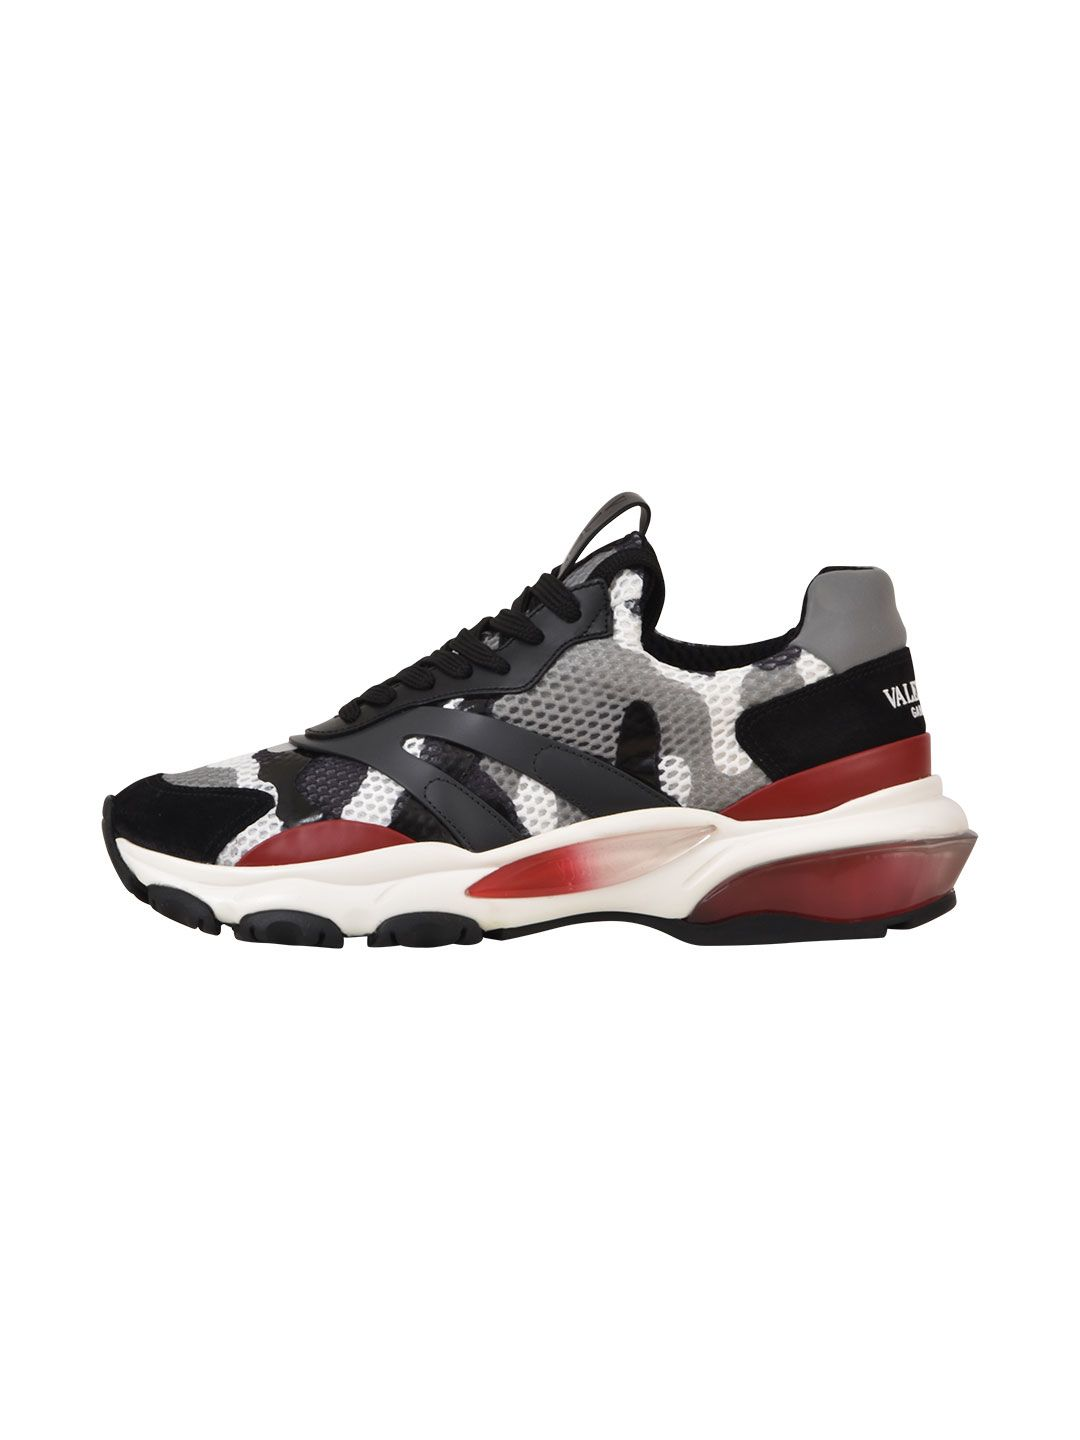 Valentino camo bounce sneakers tumblr cheap online sale many kinds of buy cheap with paypal for sale the cheapest bq6Pcszo